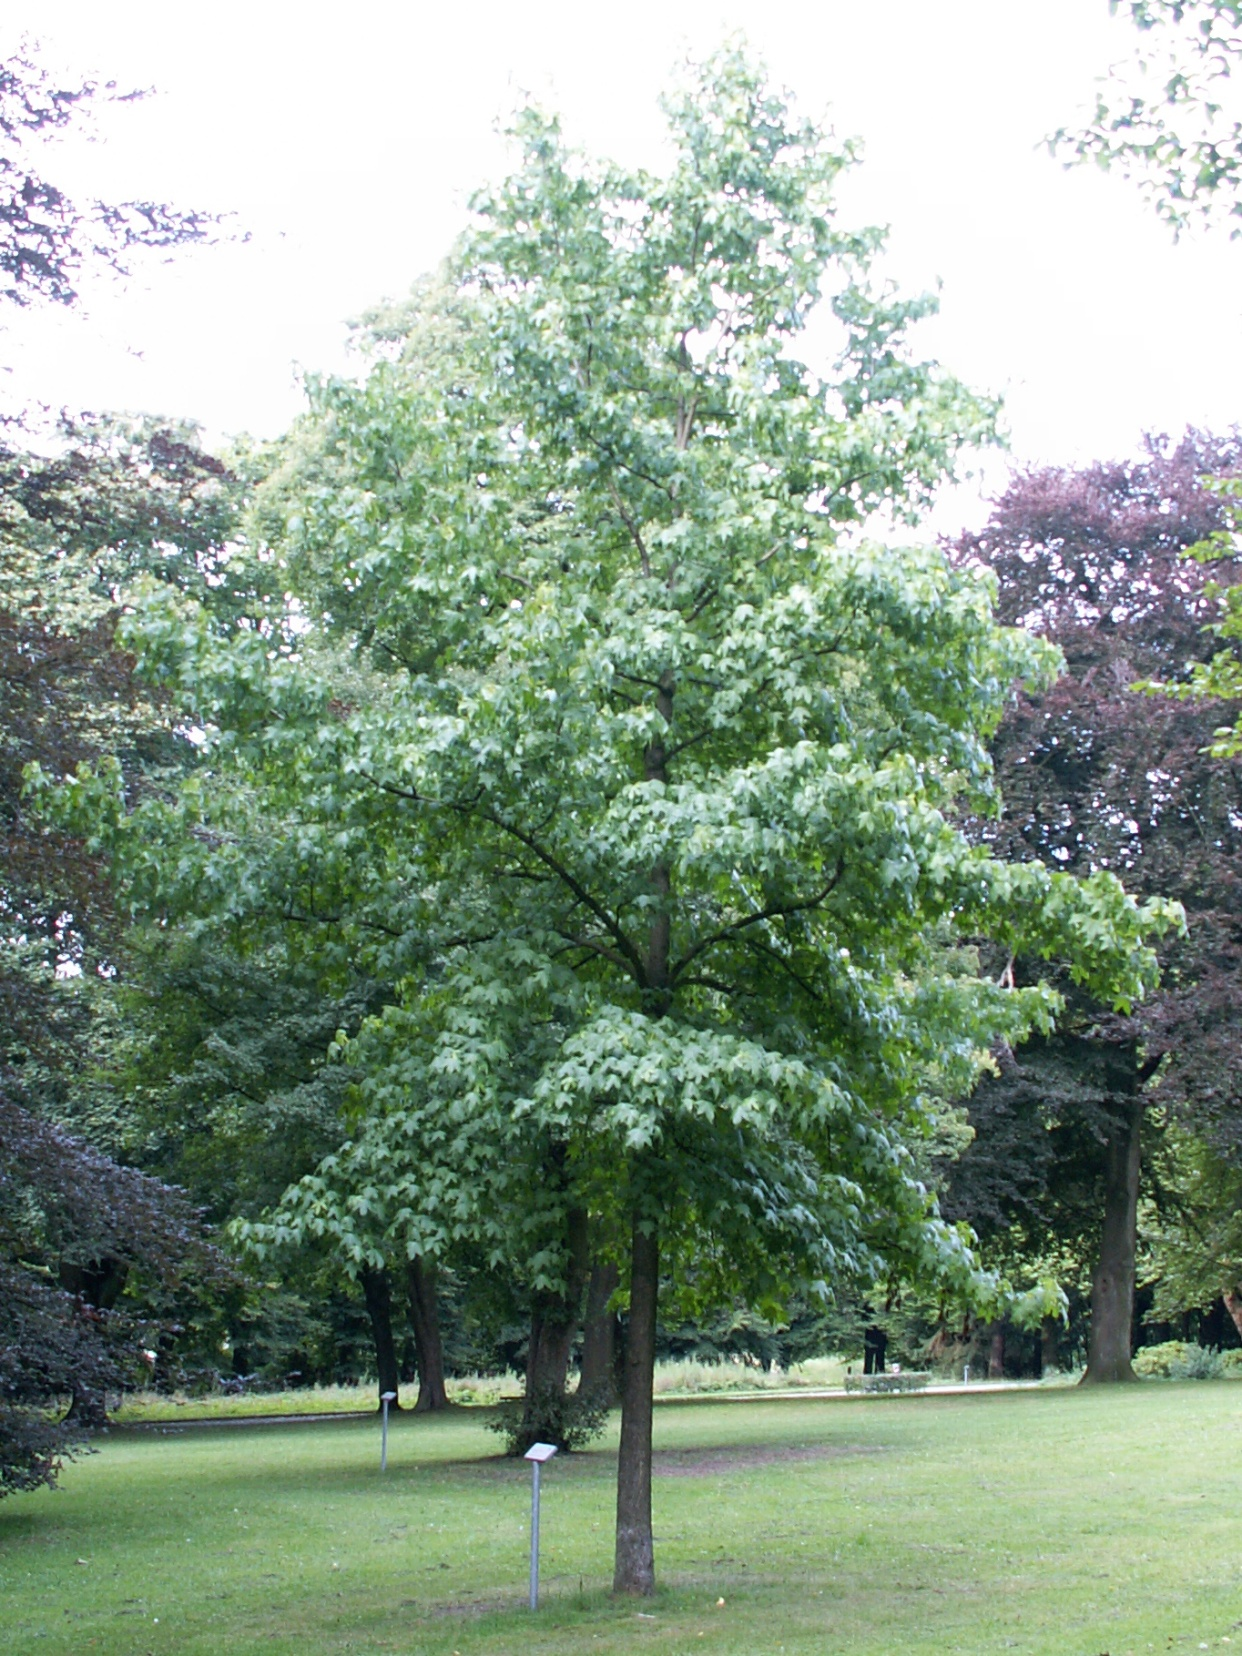 http://upload.wikimedia.org/wikipedia/commons/0/04/Liquidambar_styraciflua_tree_august.jpg